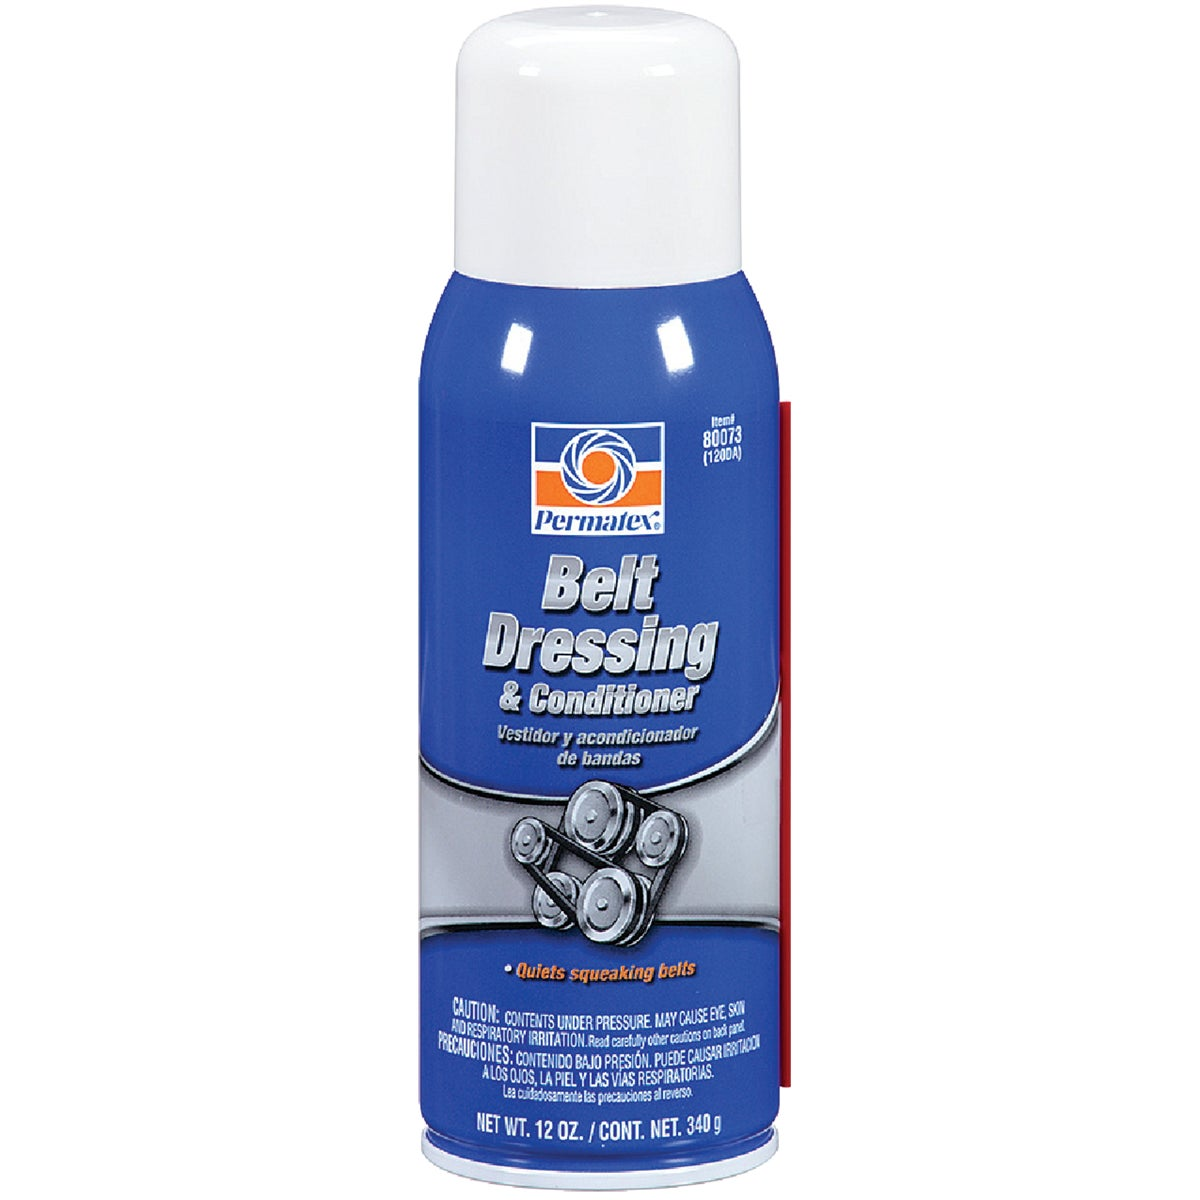 12OZ BELT DRESSING - 80073 by Itw Global Brands